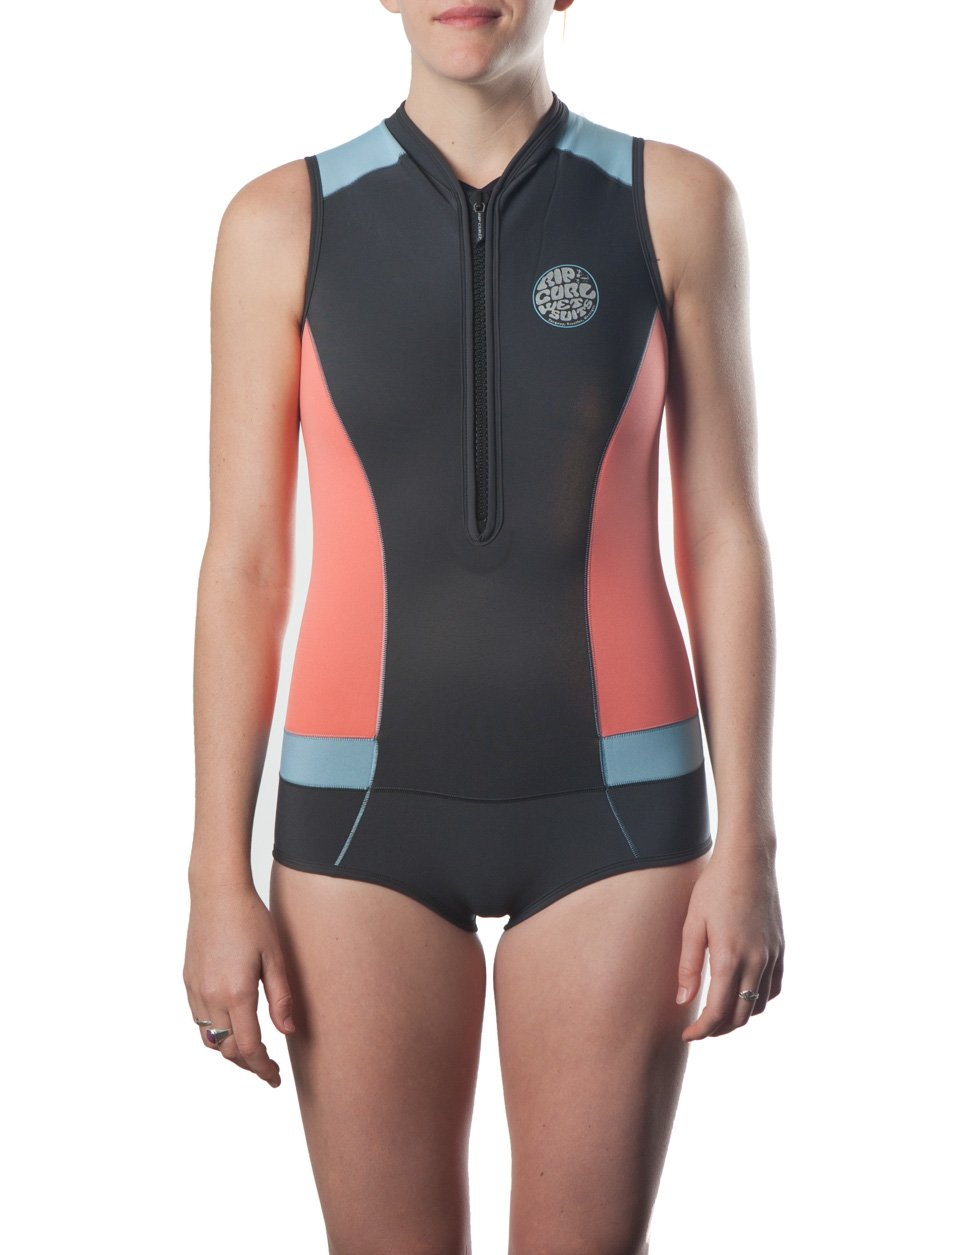 Rip Curl G Bomb Sleeve Less Bikini Spring Suit, Coral, Size 4